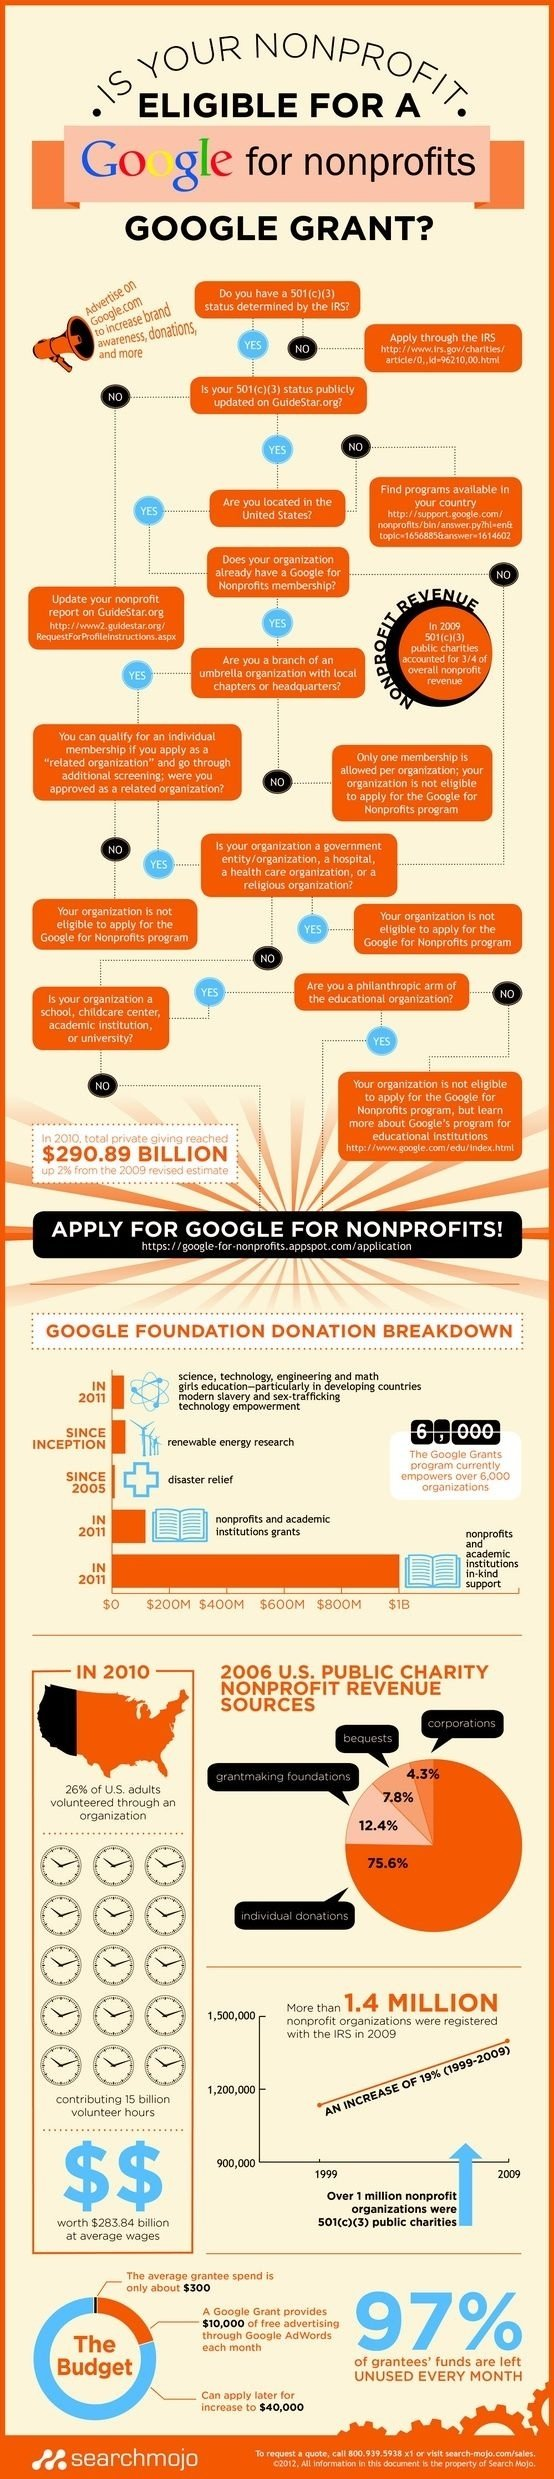 10 Spectacular Fundraising Ideas For Non Profit Organizations Events 238 best nonprofit images on pinterest nonprofit fundraising 2020